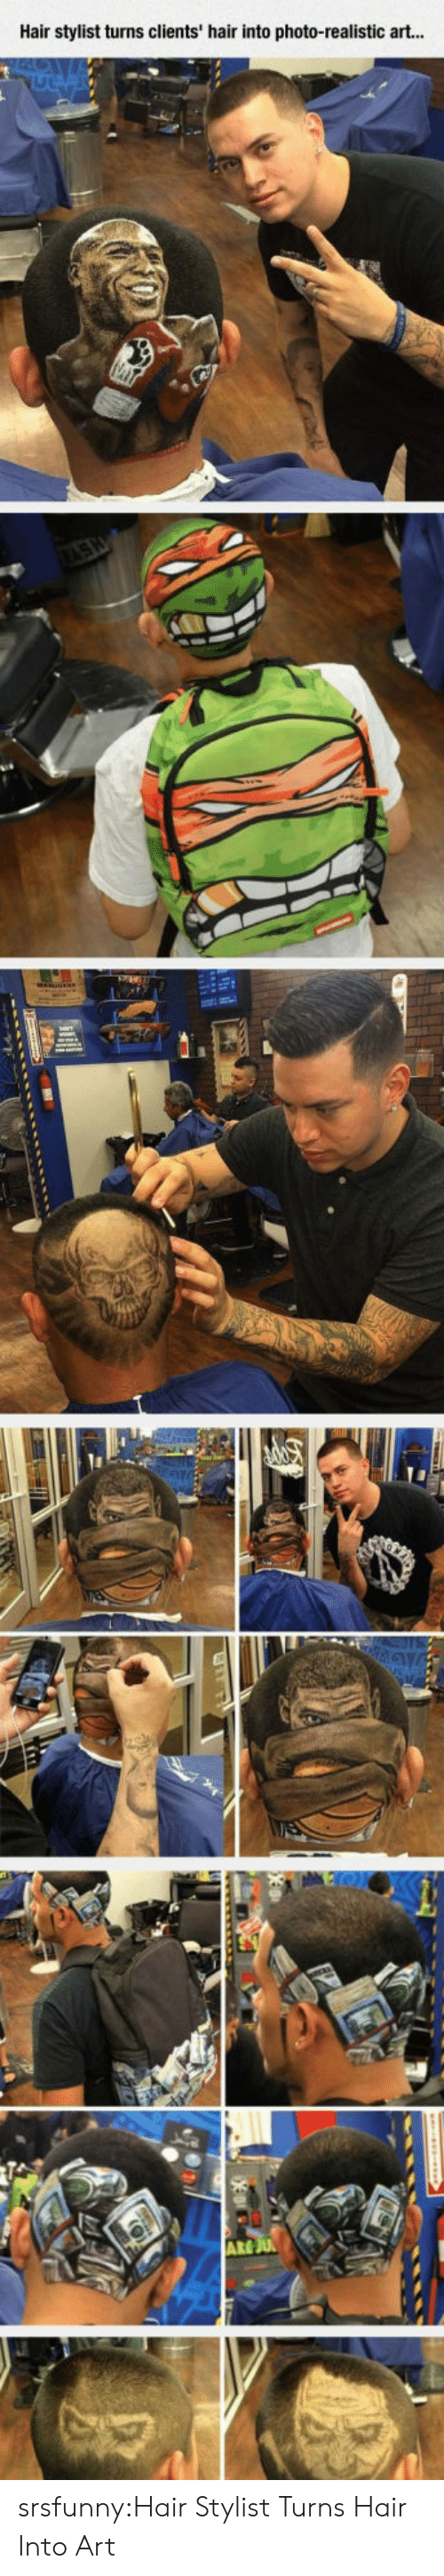 Tumblr, Blog, and Hair: Hair stylist turns clients' hair into photo-realistic art...  ARE srsfunny:Hair Stylist Turns Hair Into Art